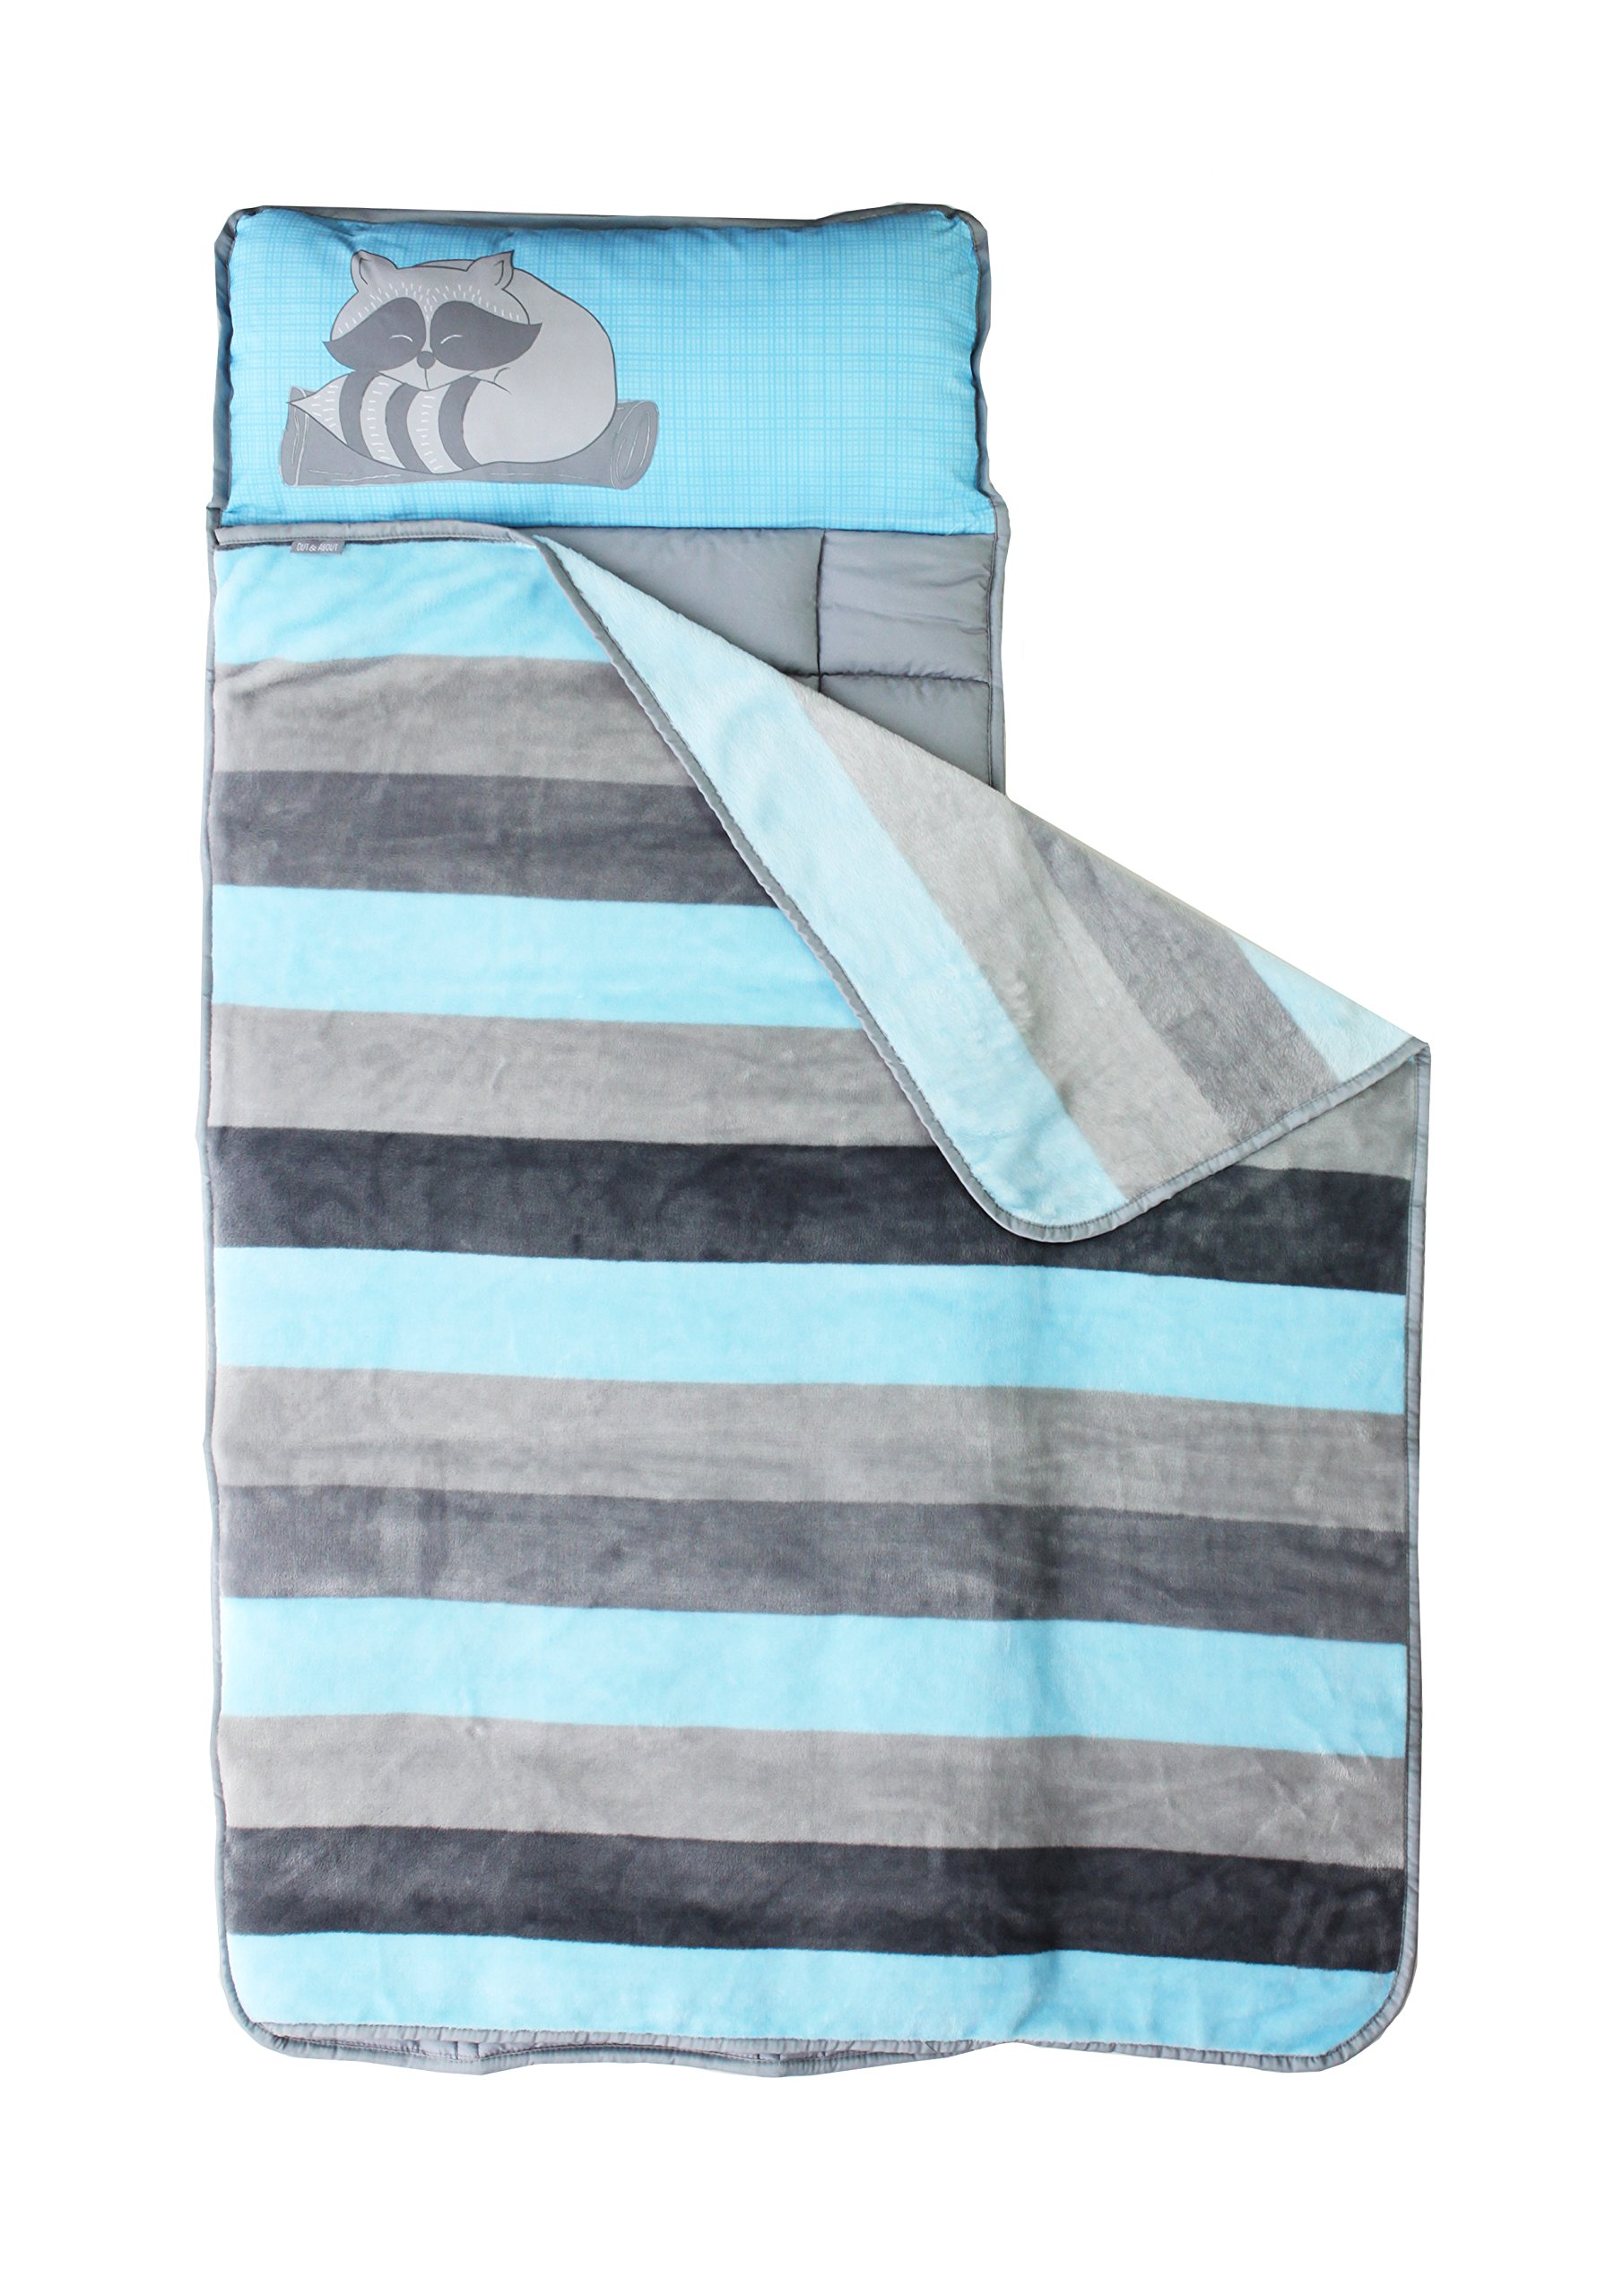 Toddler Nap Mat - Portable Washable Plush Blanket & Padded Mattress (Stripe Raccoon) By Homezy